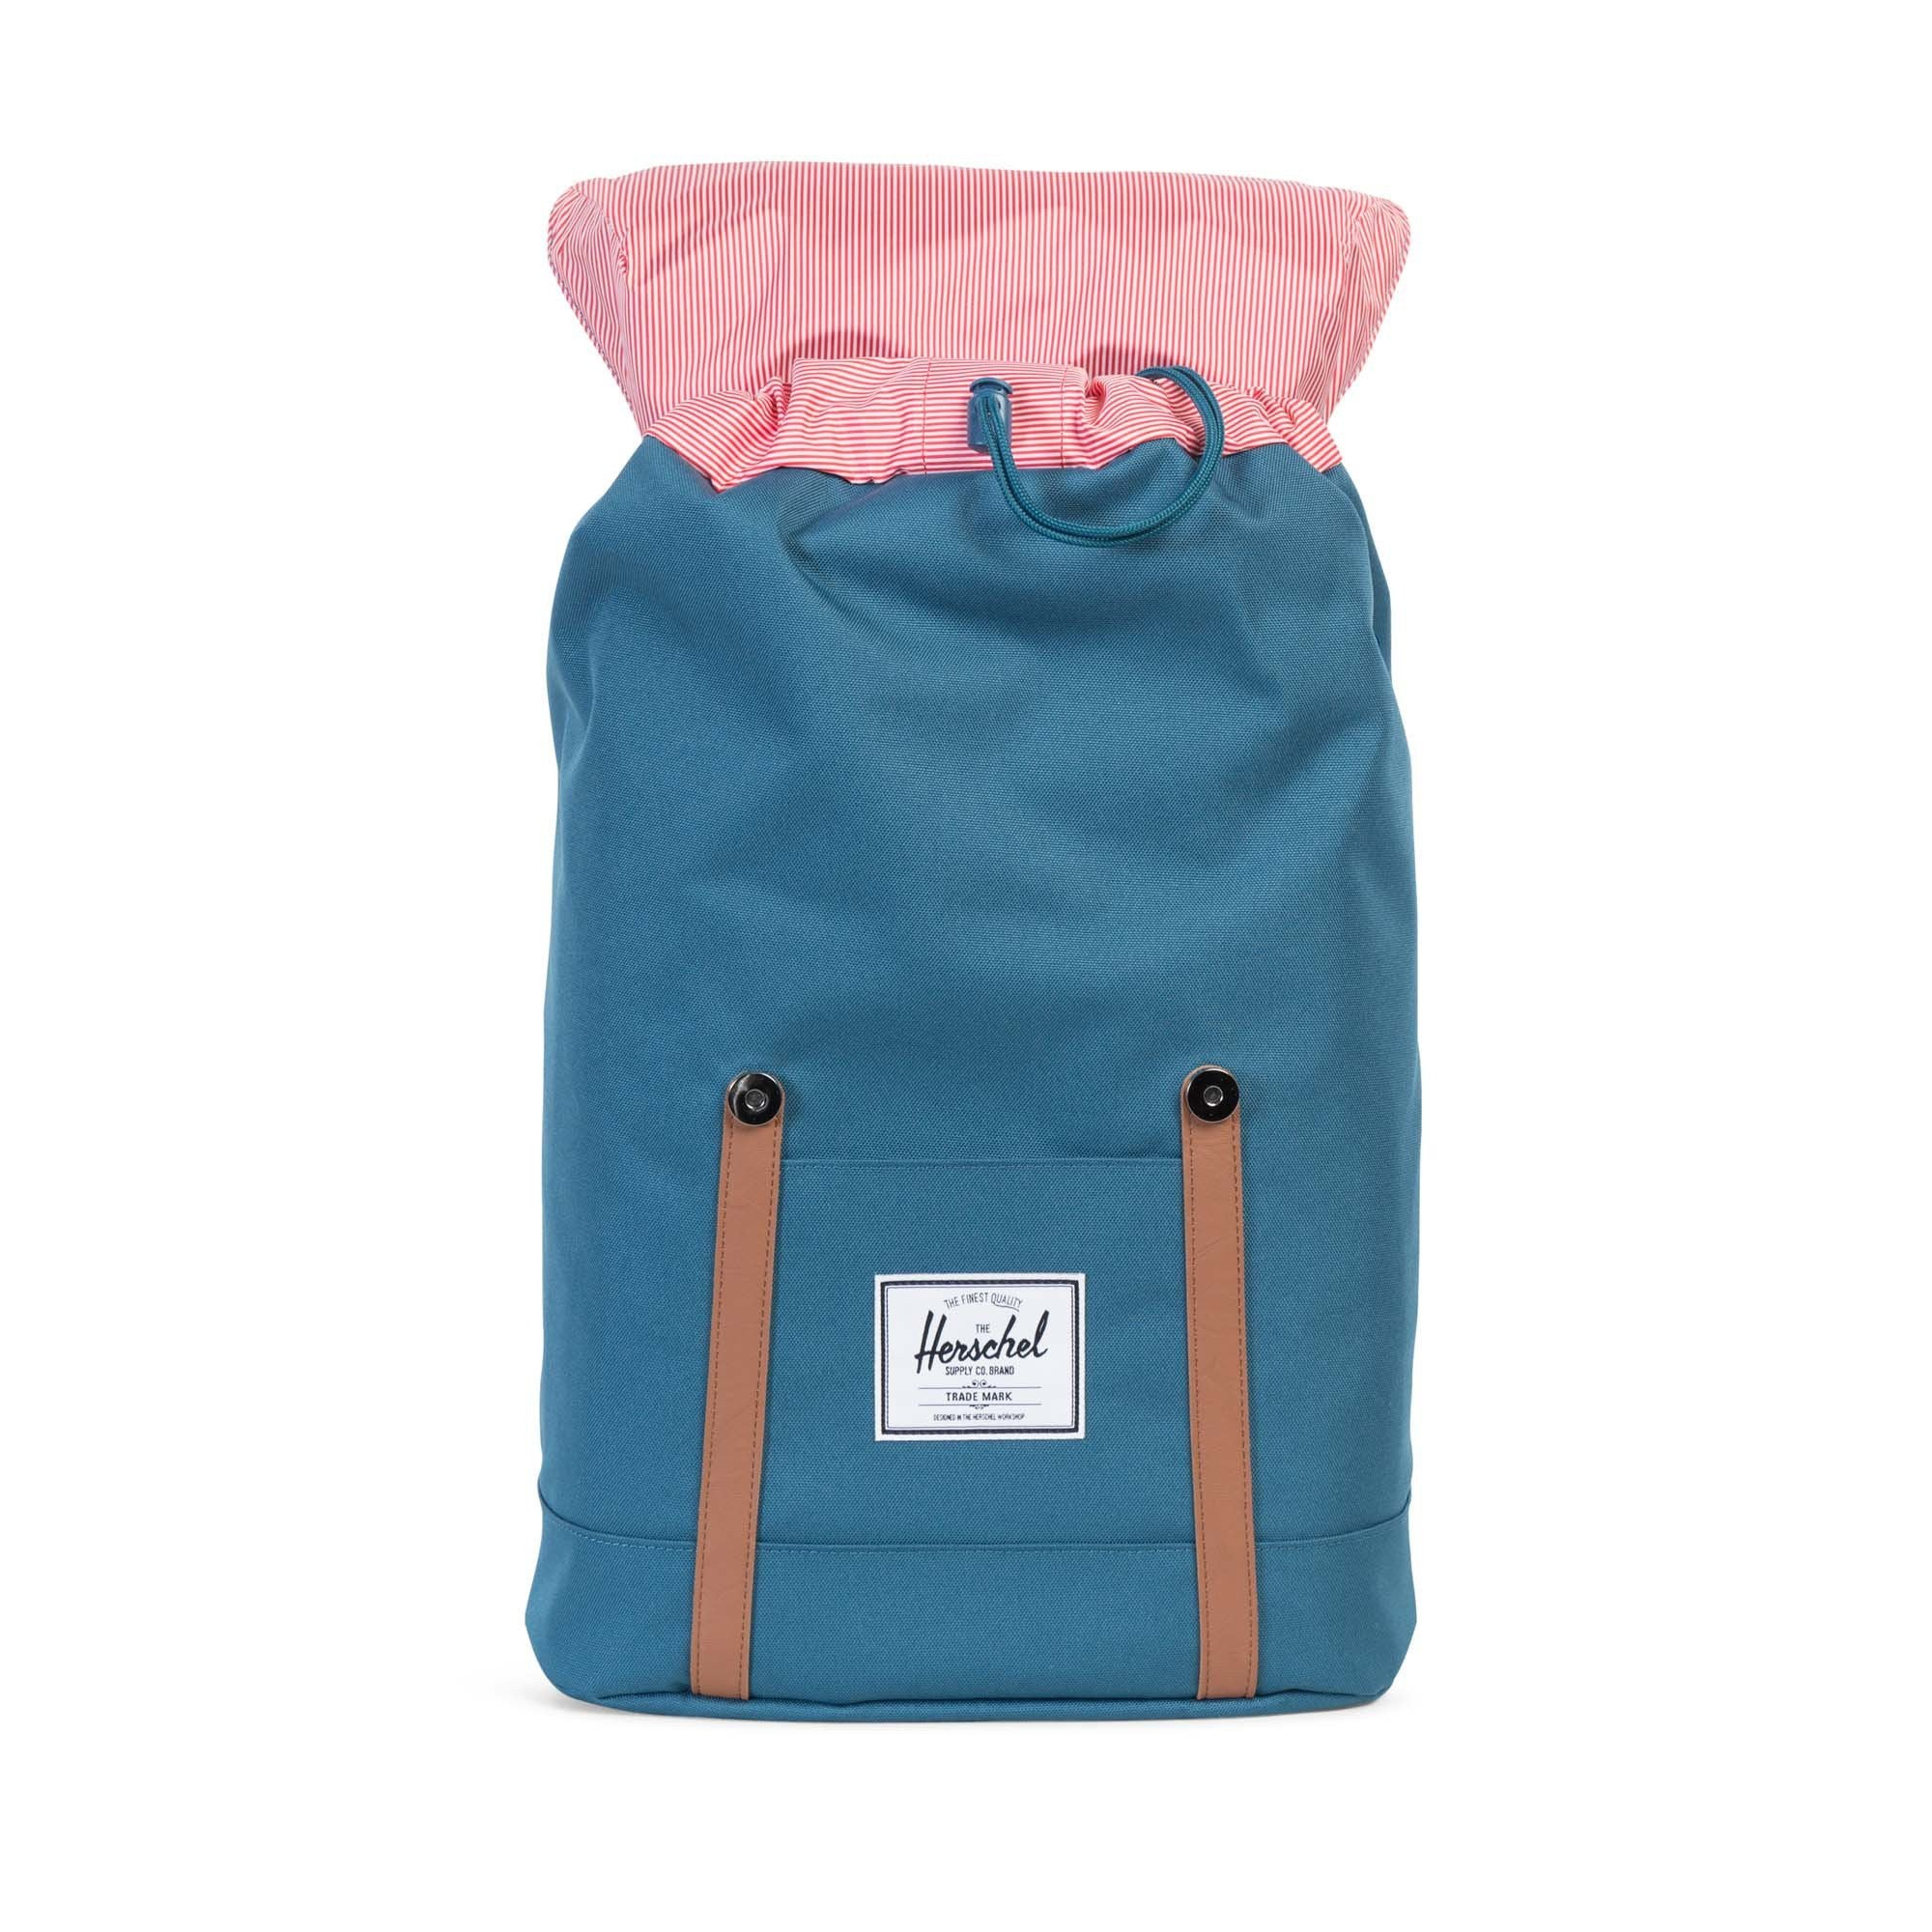 Herschel Supply Co. - Retreat Backpack, Indian Teal - The Giant Peach - 2